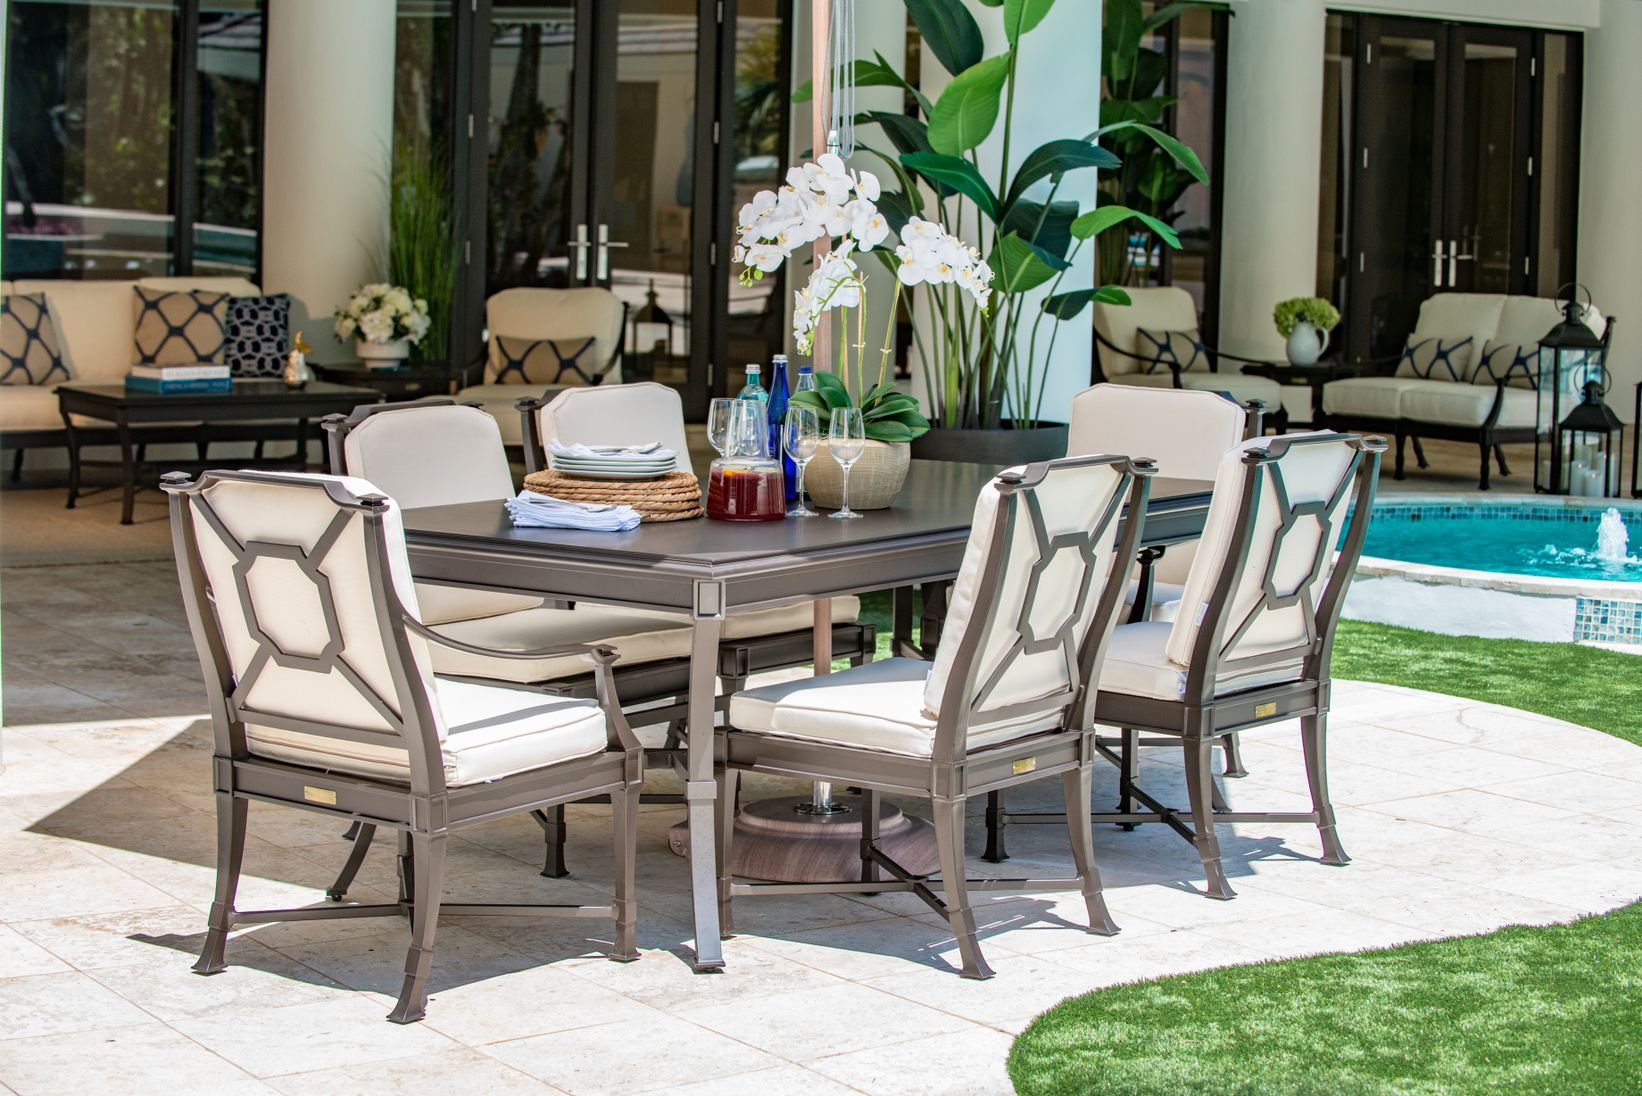 Patio Furniture Table And Chairs Patio Furniture Best Outdoor Patio Furniture Store Online